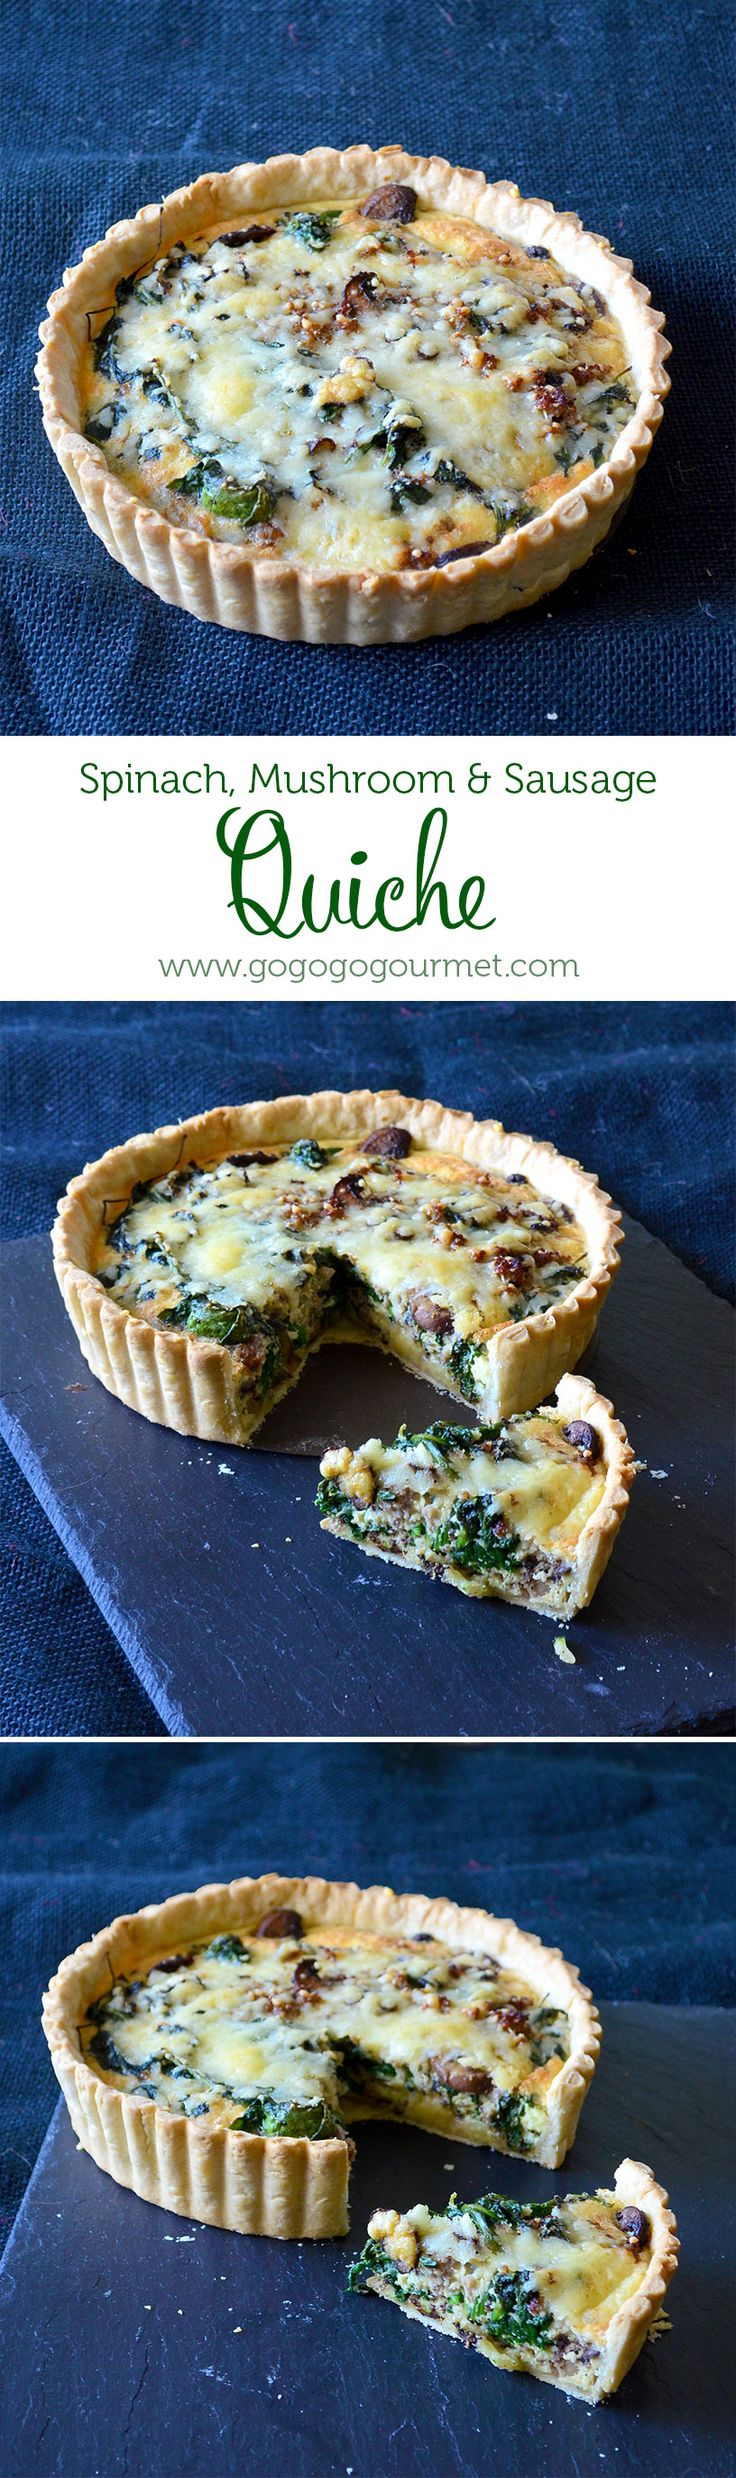 Weekend Brunch: Spinach, Mushroom & Sausage Quiche | Go Go Go Gourmet